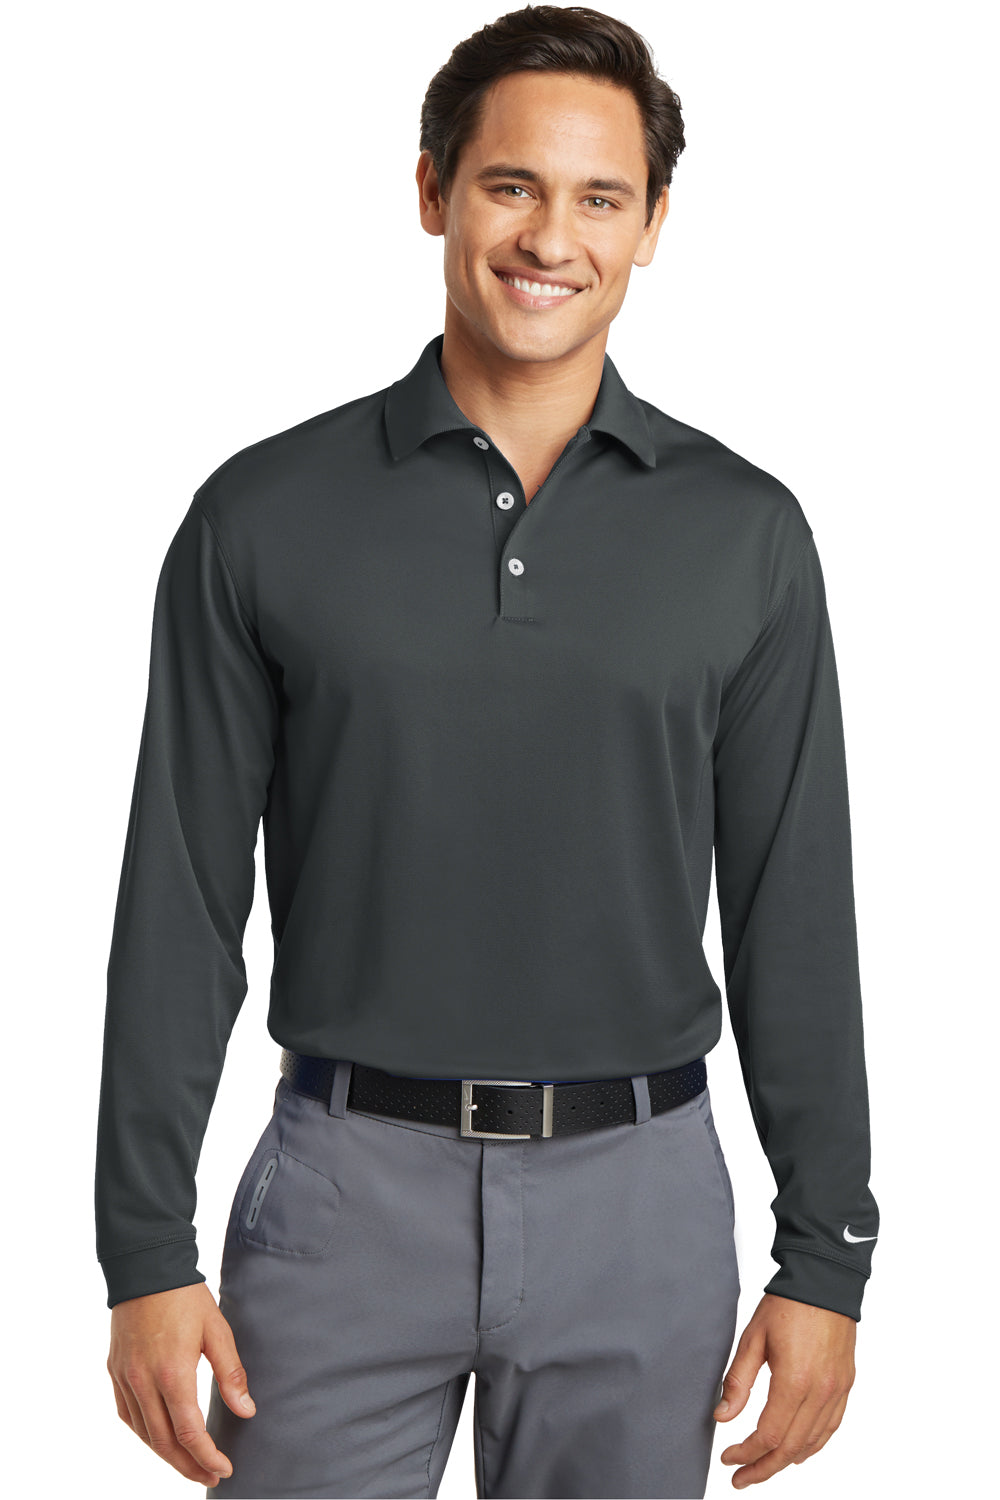 Nike 466364 Mens Stretch Tech Dri-Fit Moisture Wicking Long Sleeve Polo Shirt Anthracite Grey Front